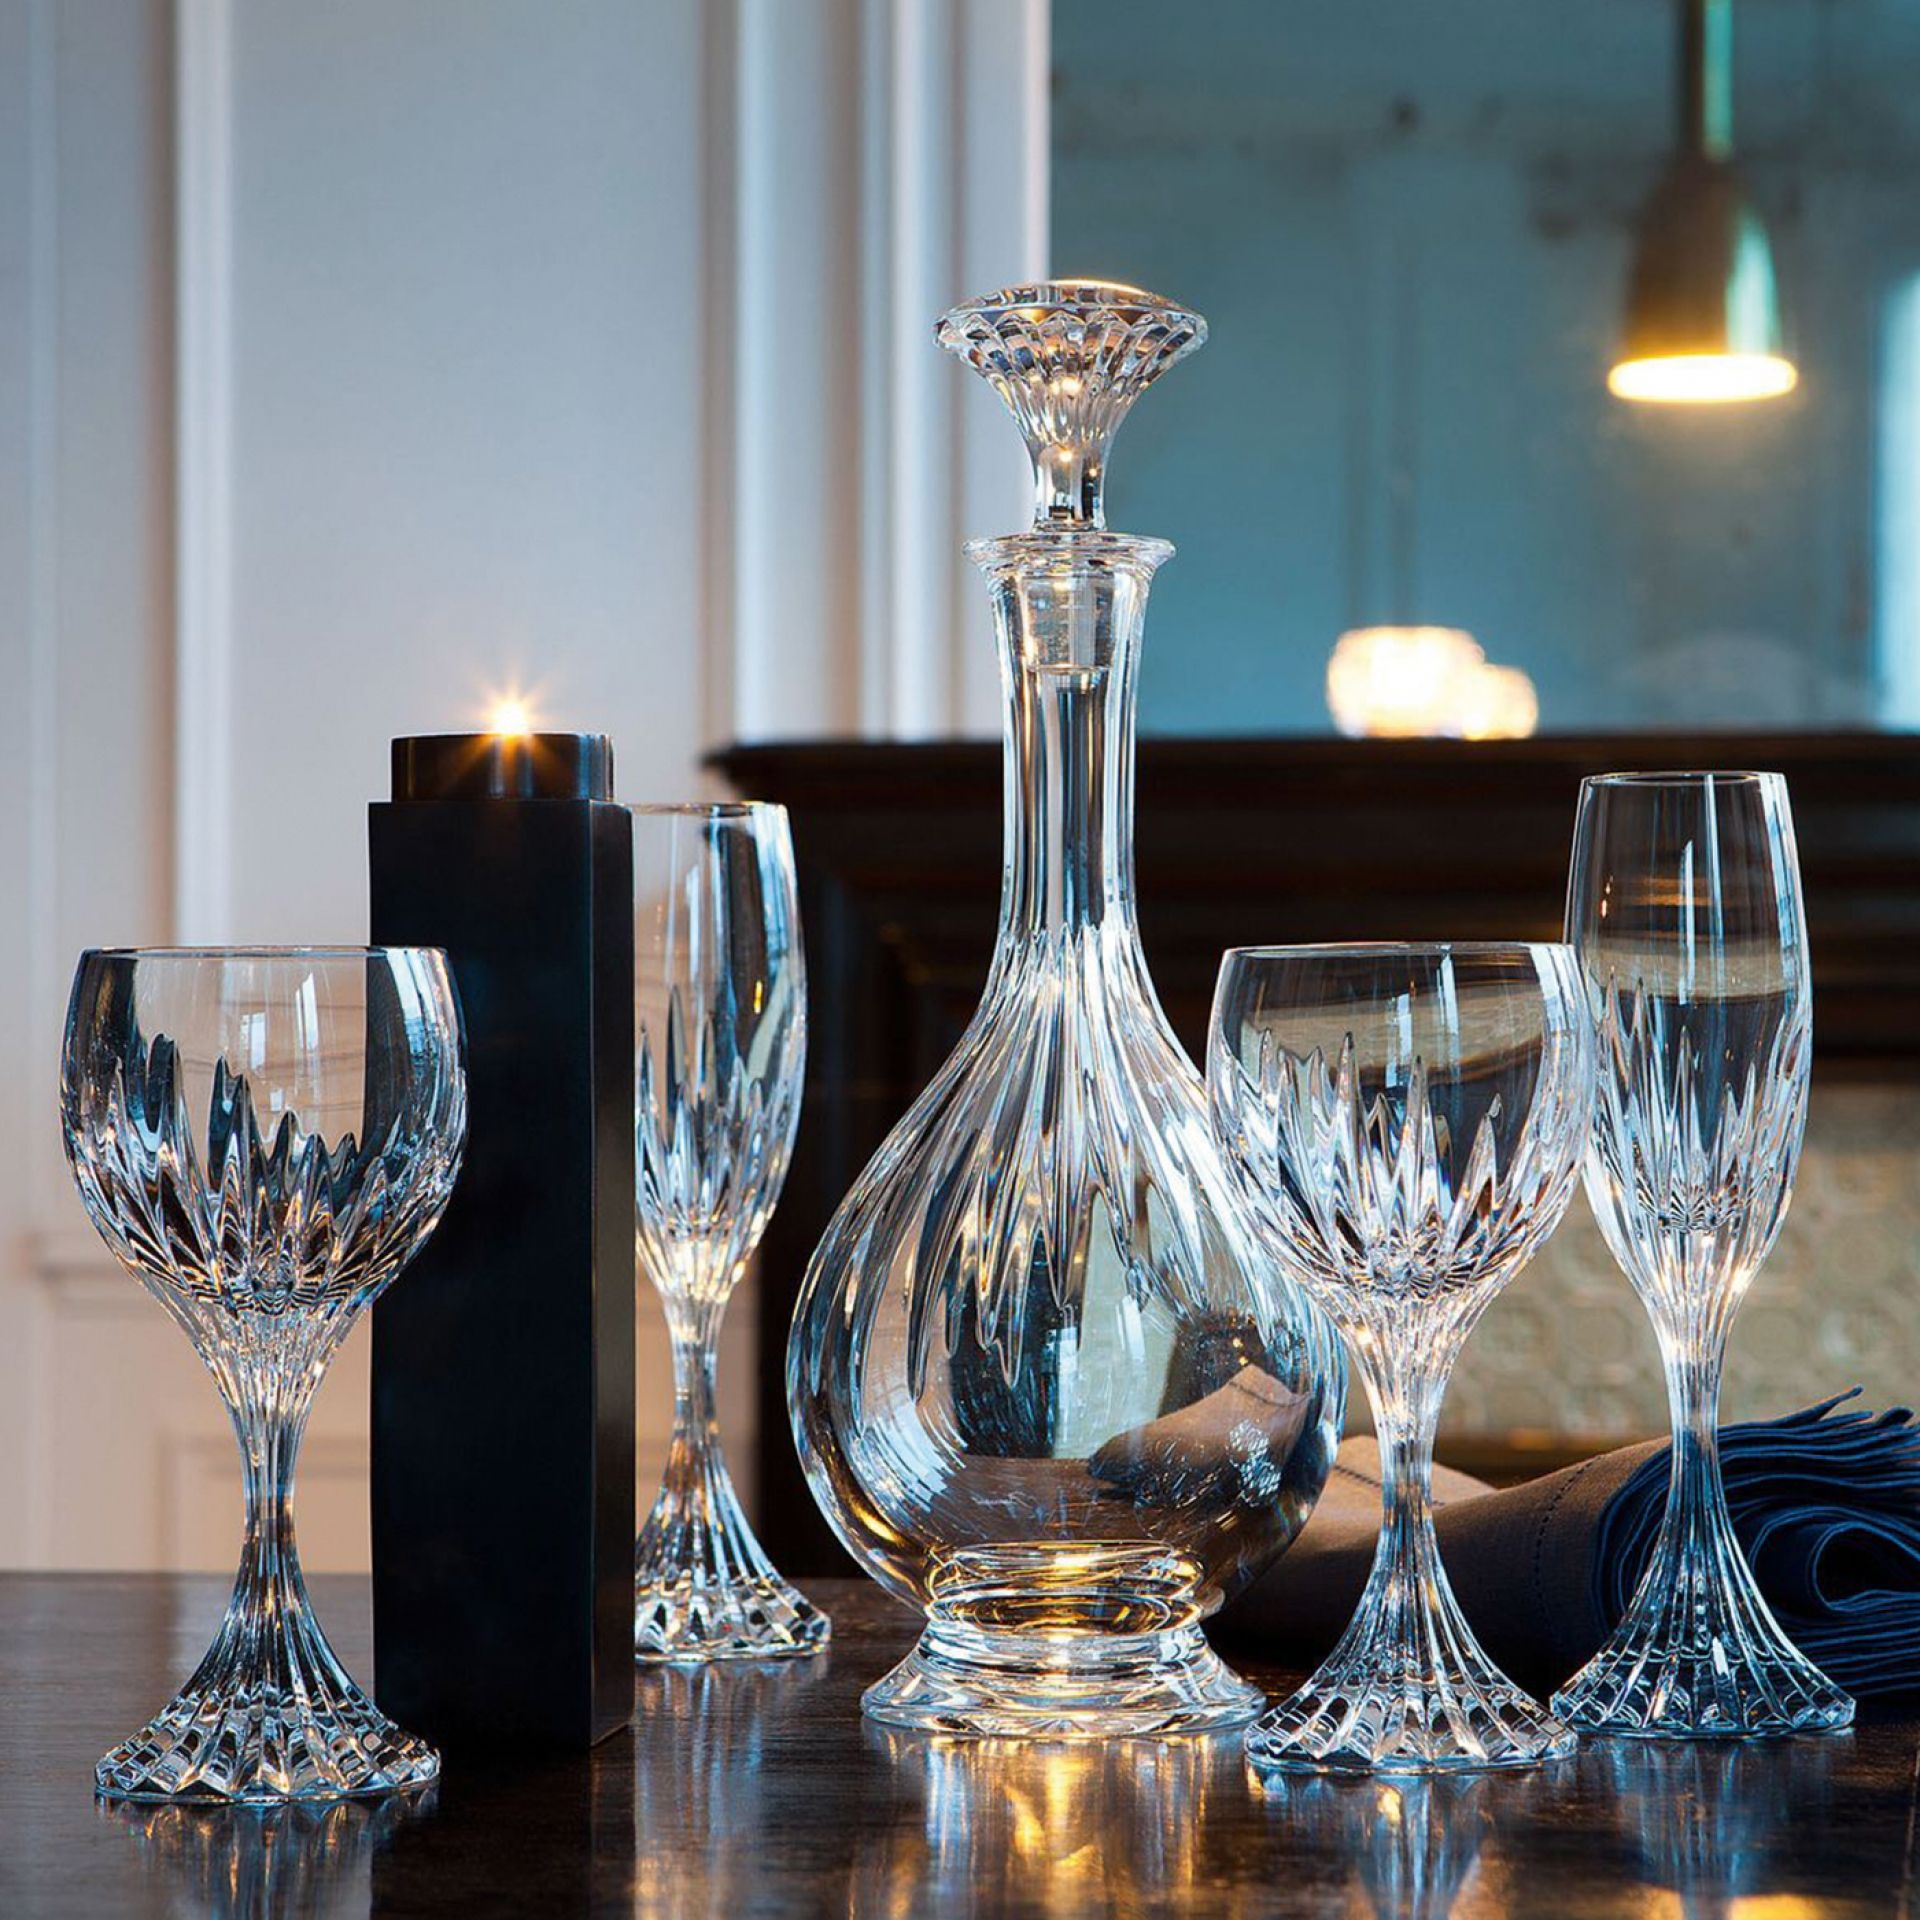 Baccarat - The intricate detailing gives the Massena glass the appearance of impressive heft, as if it were a modern-day chalice. Deep orgue bevel cuts are etched directly into the clear crystal, irradiating from the foot of the glass to the base of the wide bowl. All pieces from the Massena collection share a scrupulously textural quality. Shop now https://boulesse.com/en/product/6203/Baccarat/Massna-Glass